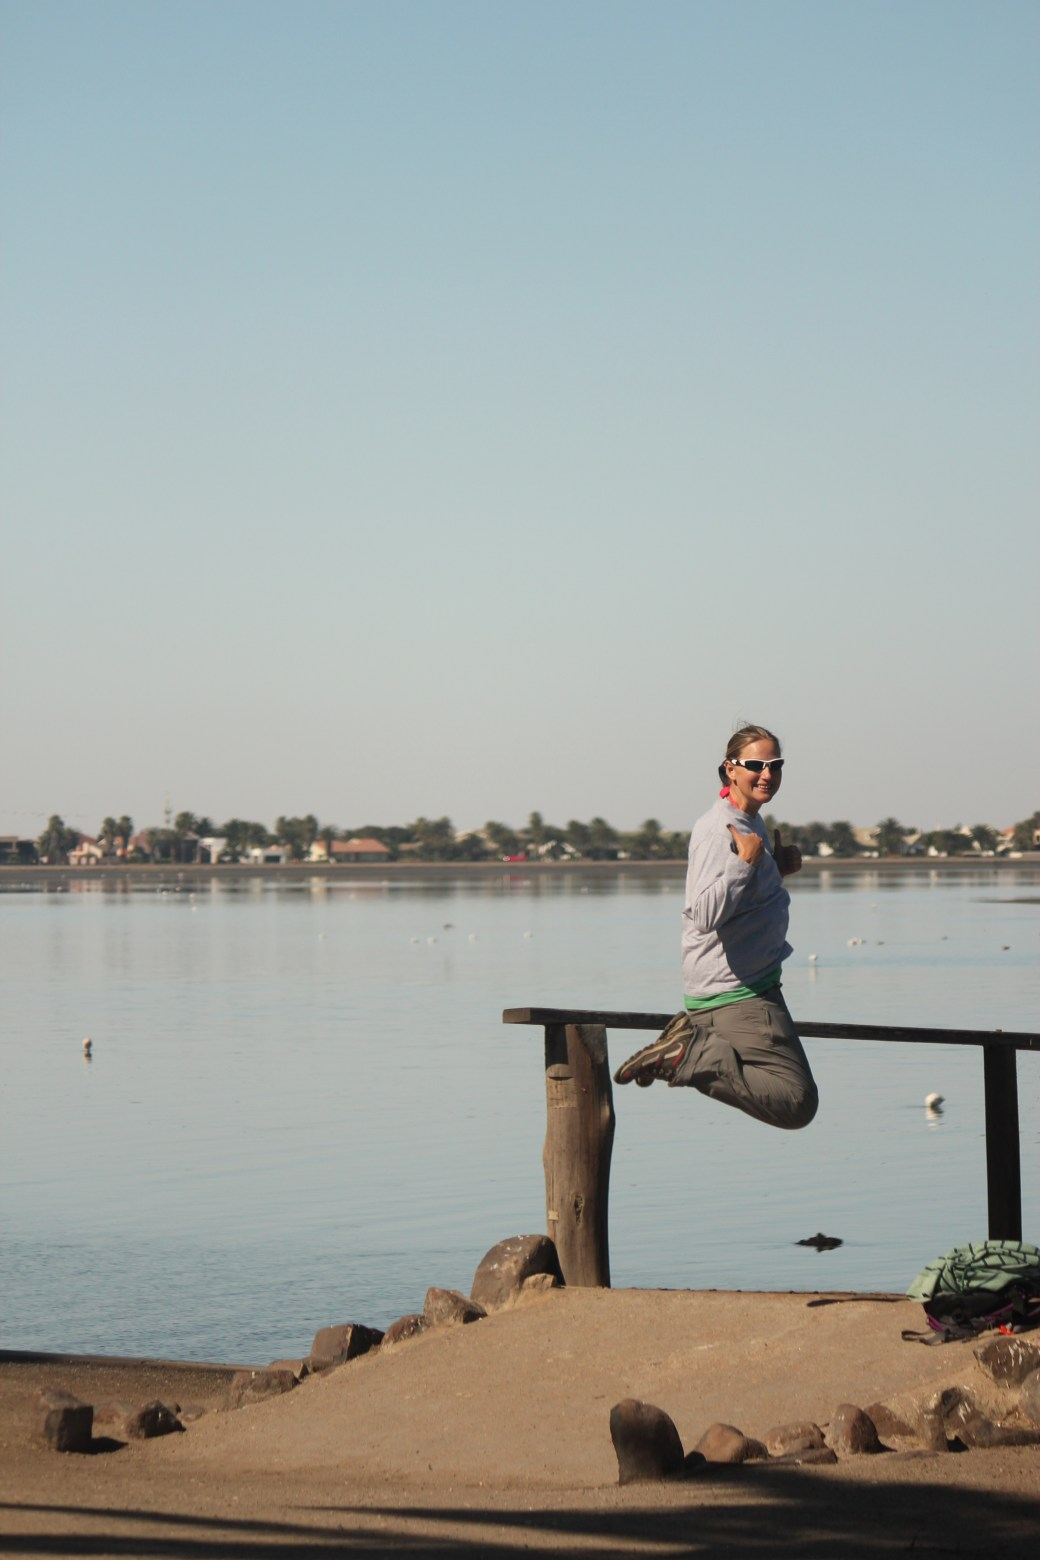 Signature Jumpin' Photograph on Dock; Walvis Bay, Namibia; 2013